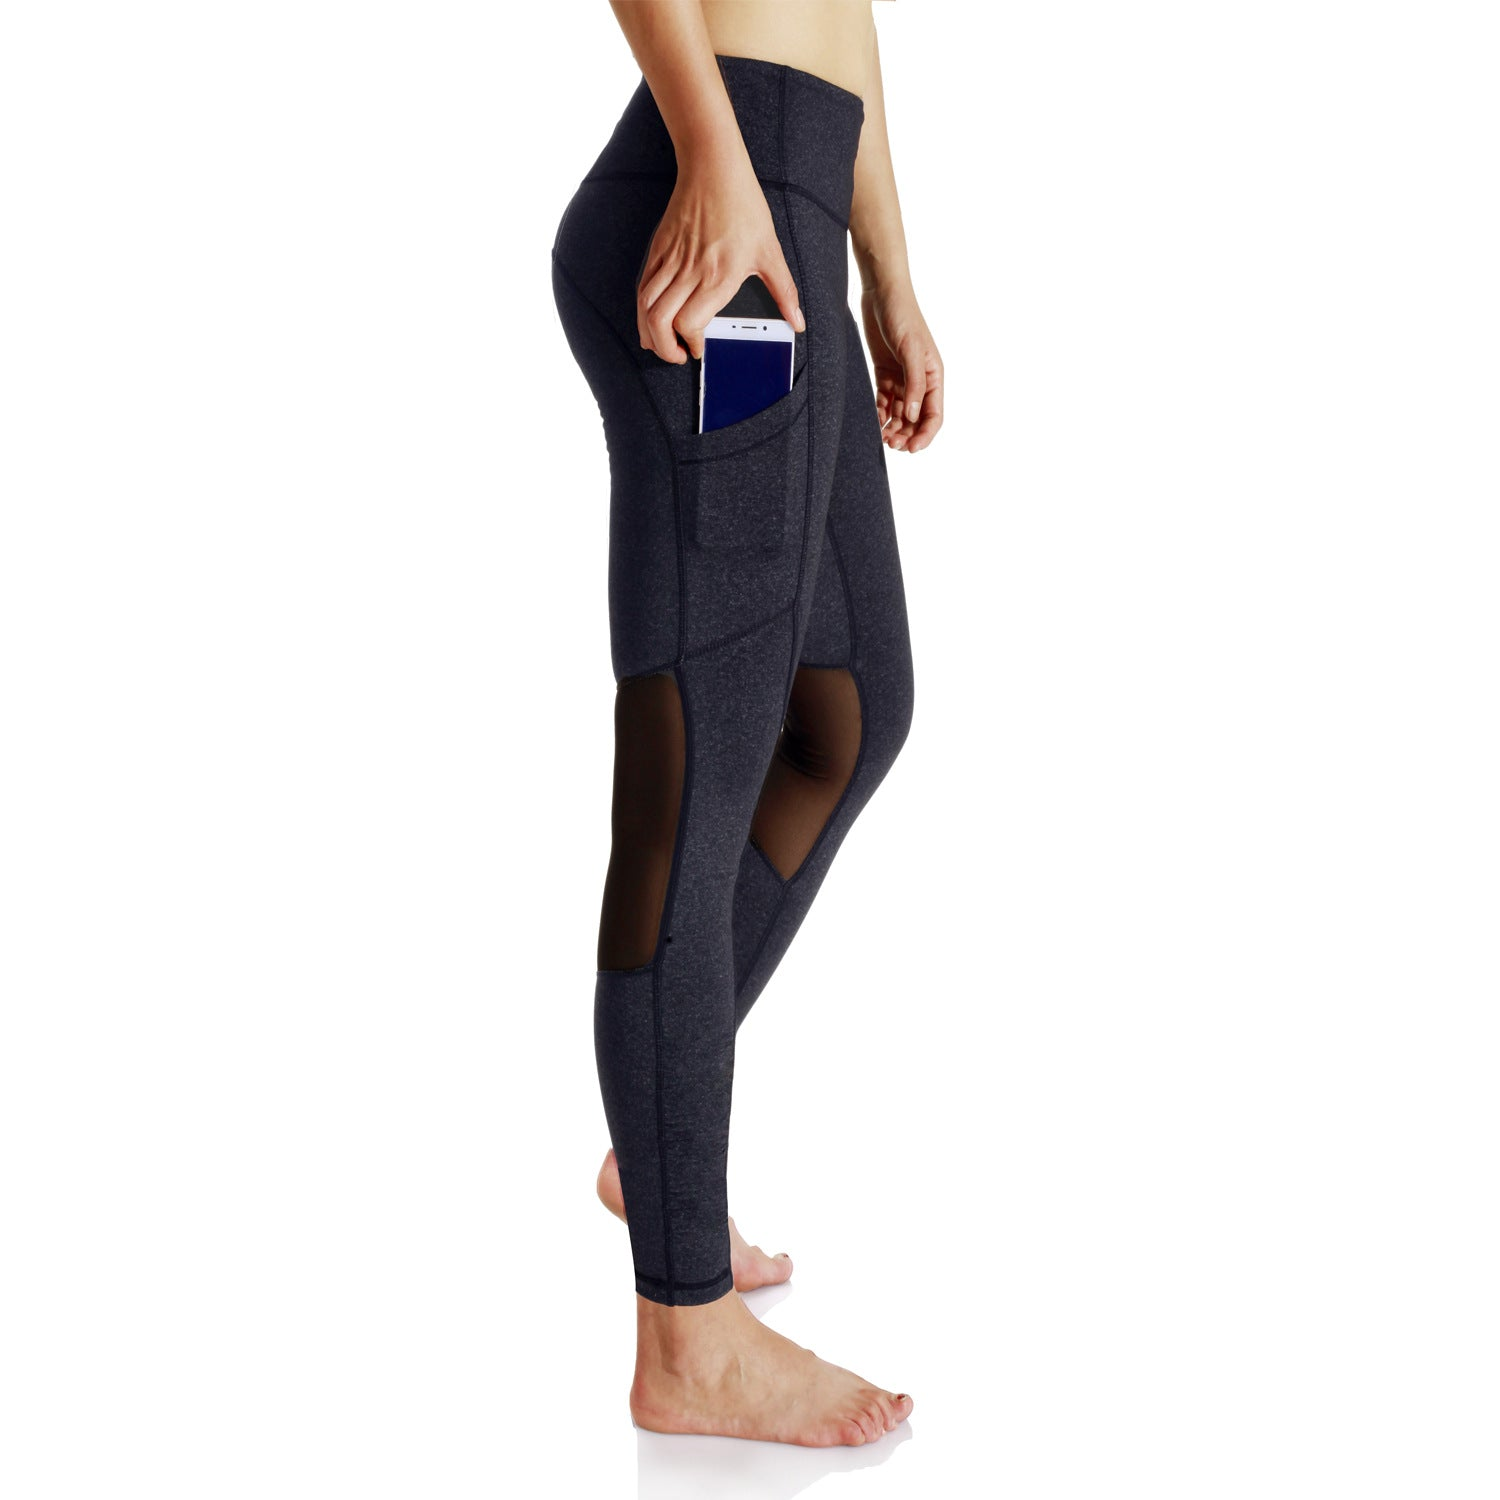 eedfd0dcb268 Active Wear - Women's Workout Leggings with High Waist Tummy Control and  Out Pocket / Running, Yoga Pants